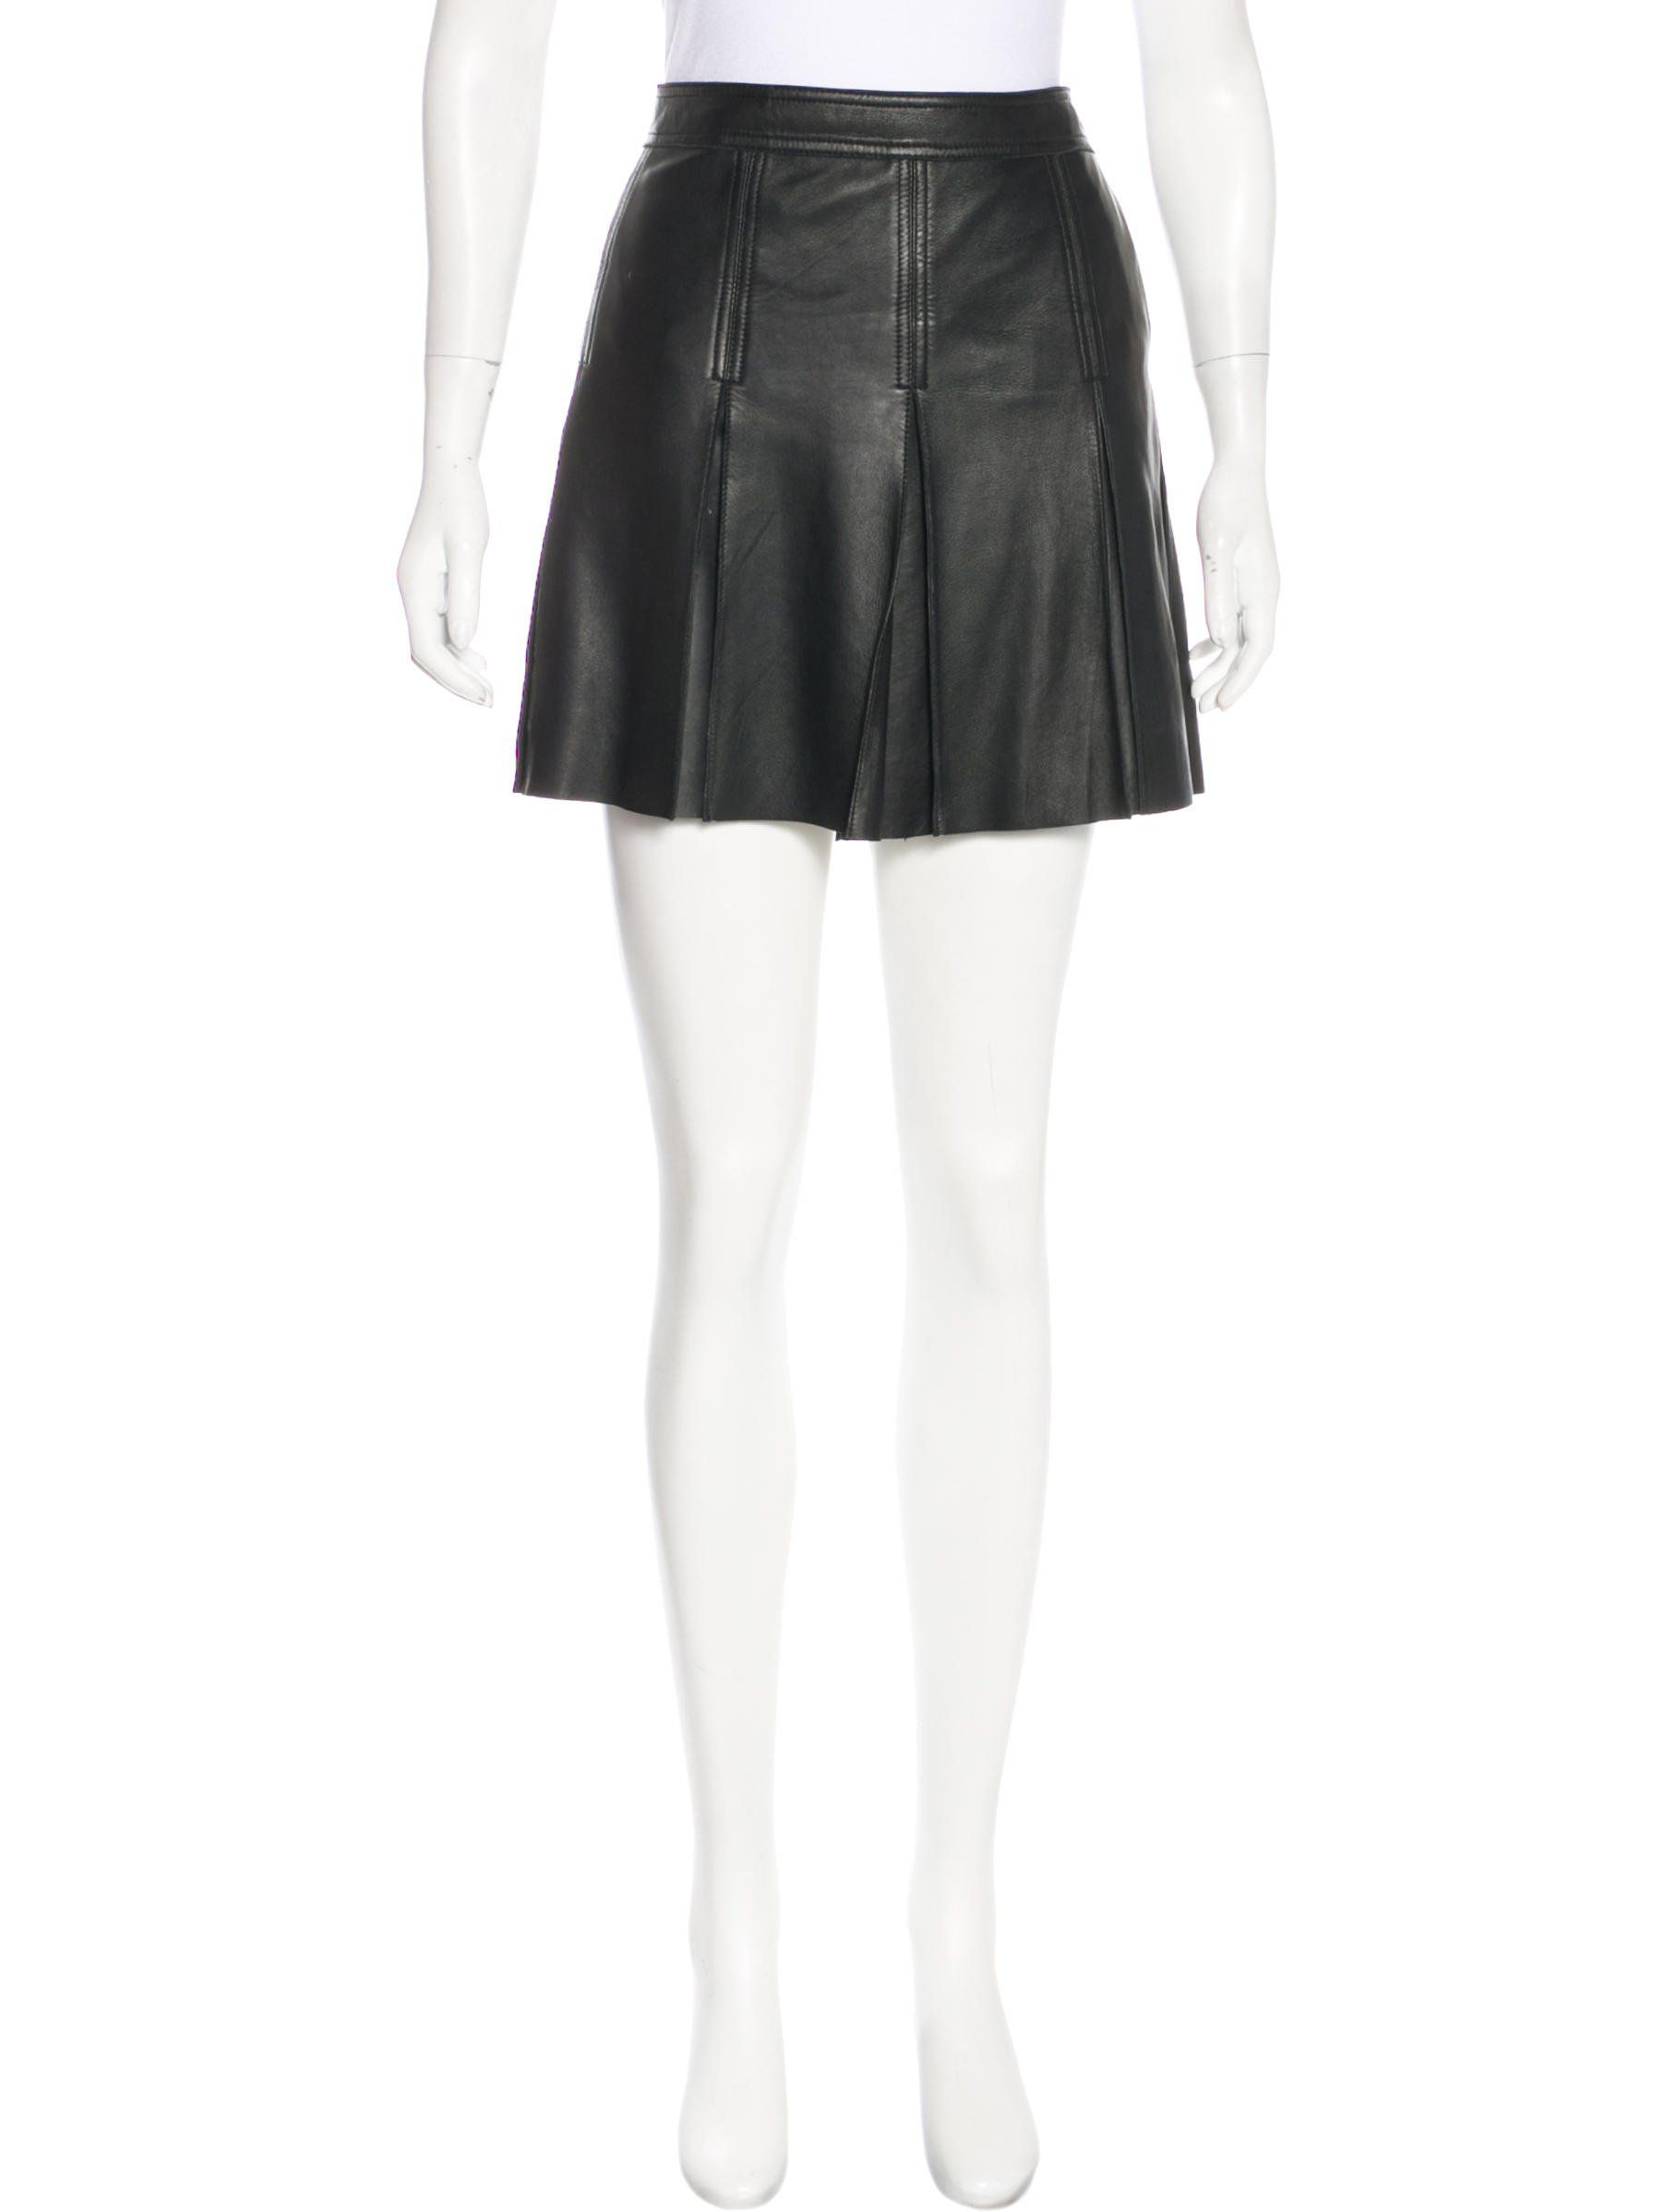 39507daa4b Black Polo Ralph Lauren leather mini skirt with tonal stitching throughout,  pleated accents at front and back and concealed button closures at side.